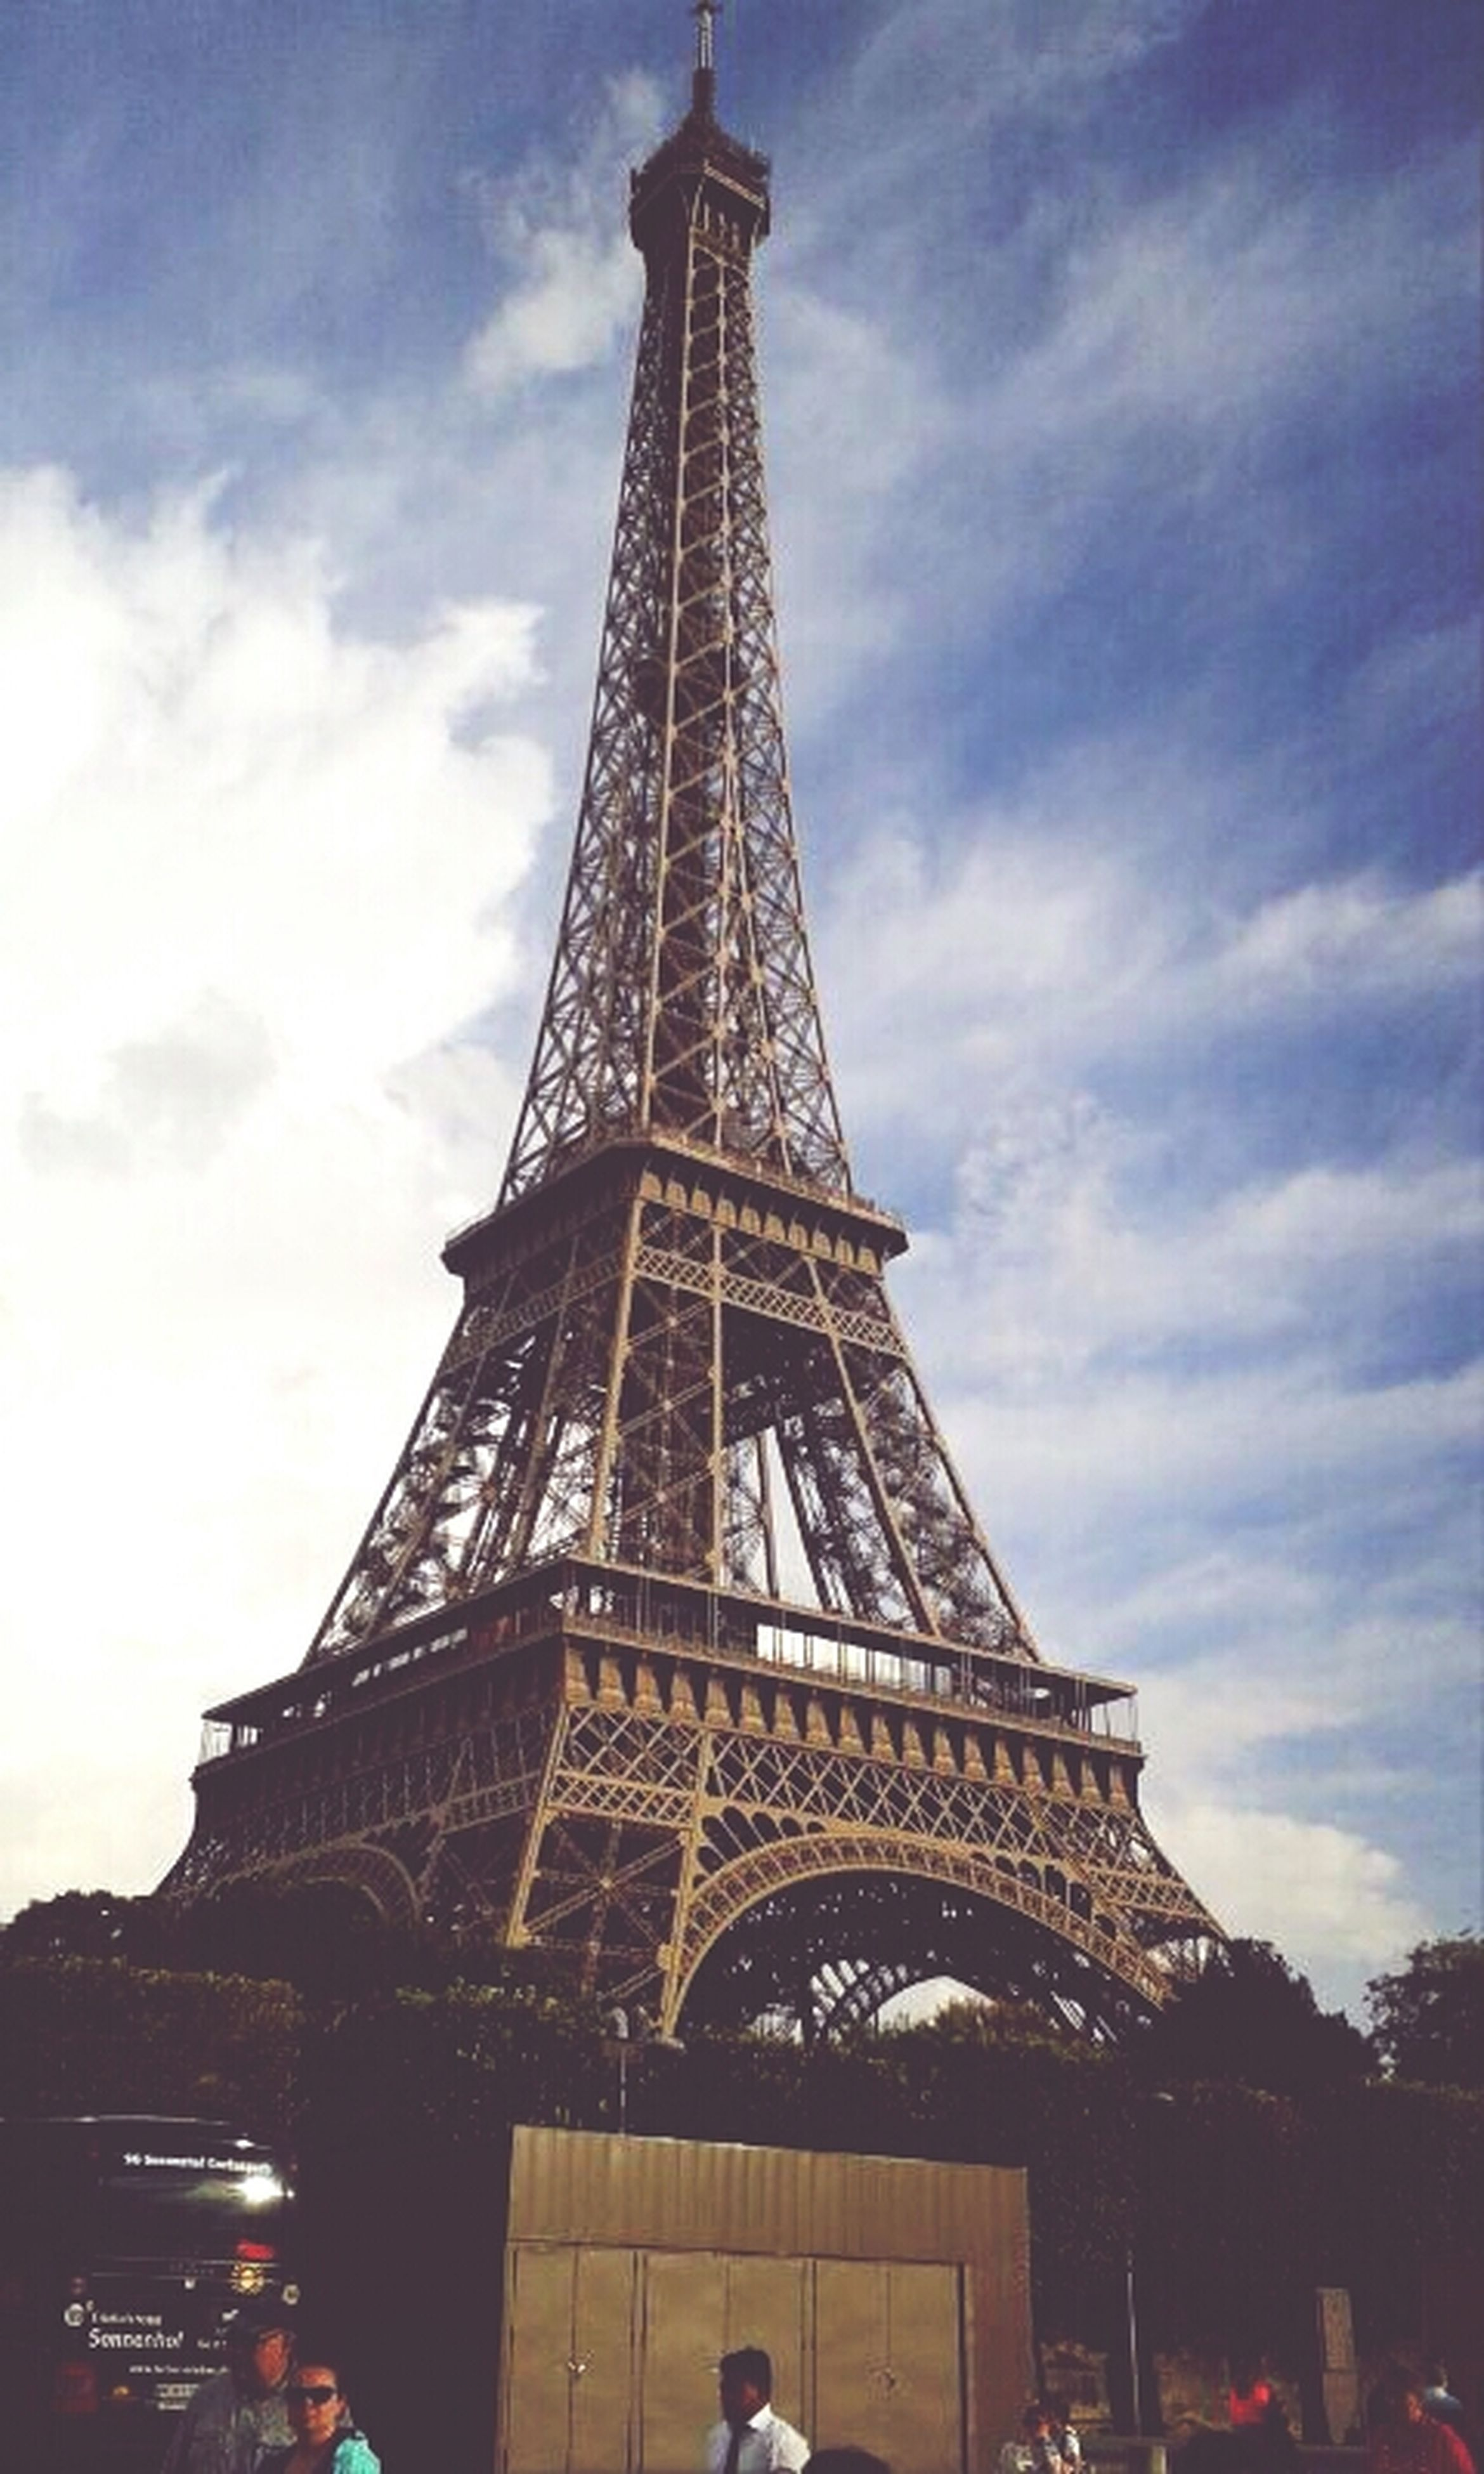 eiffel tower, architecture, famous place, built structure, international landmark, tower, travel destinations, tourism, tall - high, capital cities, sky, travel, culture, low angle view, history, building exterior, city, cloud - sky, architectural feature, metal